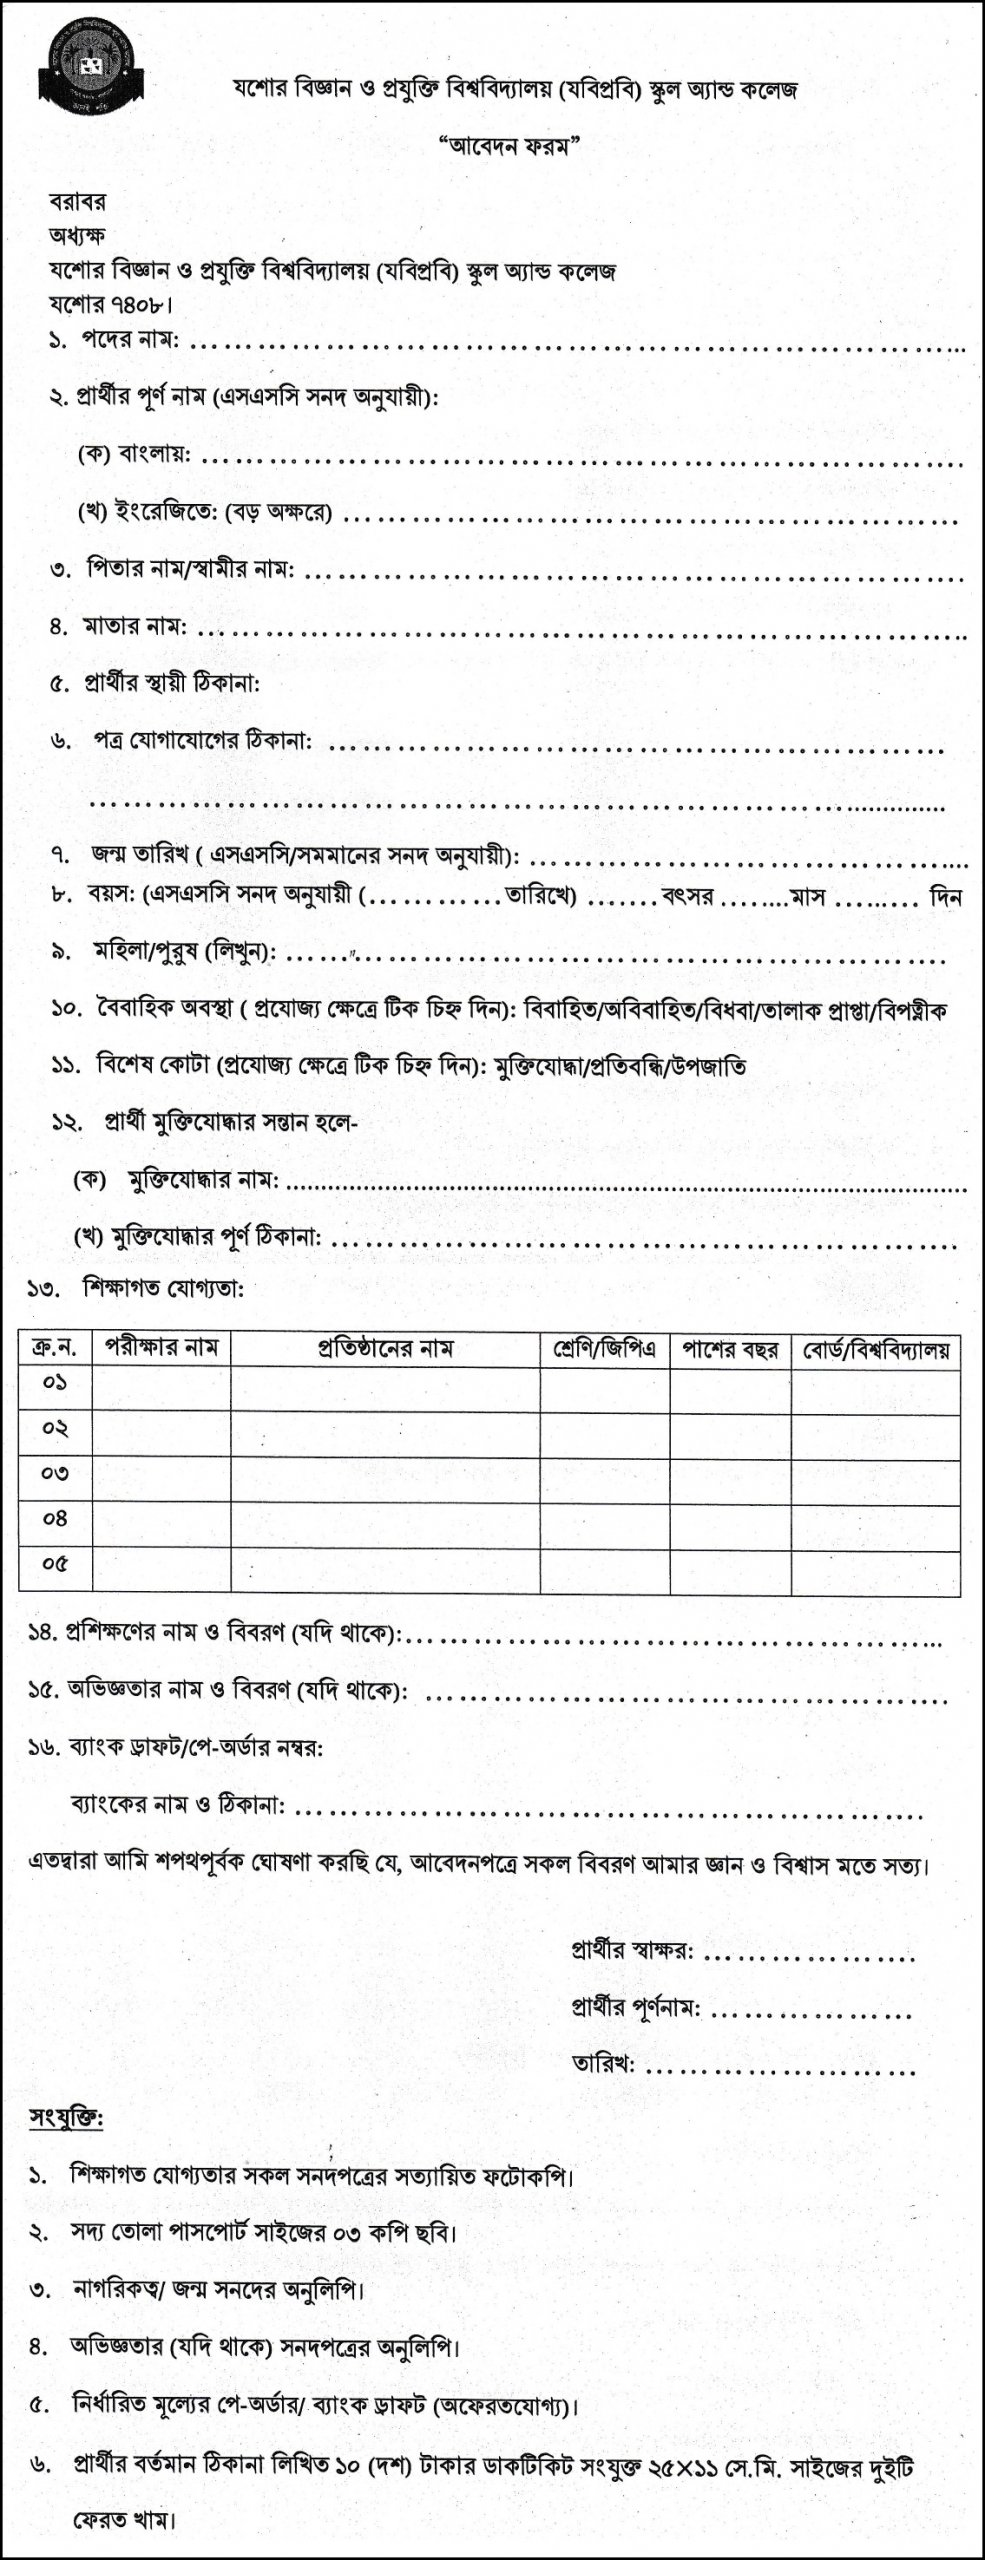 Jessore University of Science and Technology Application Form 2020